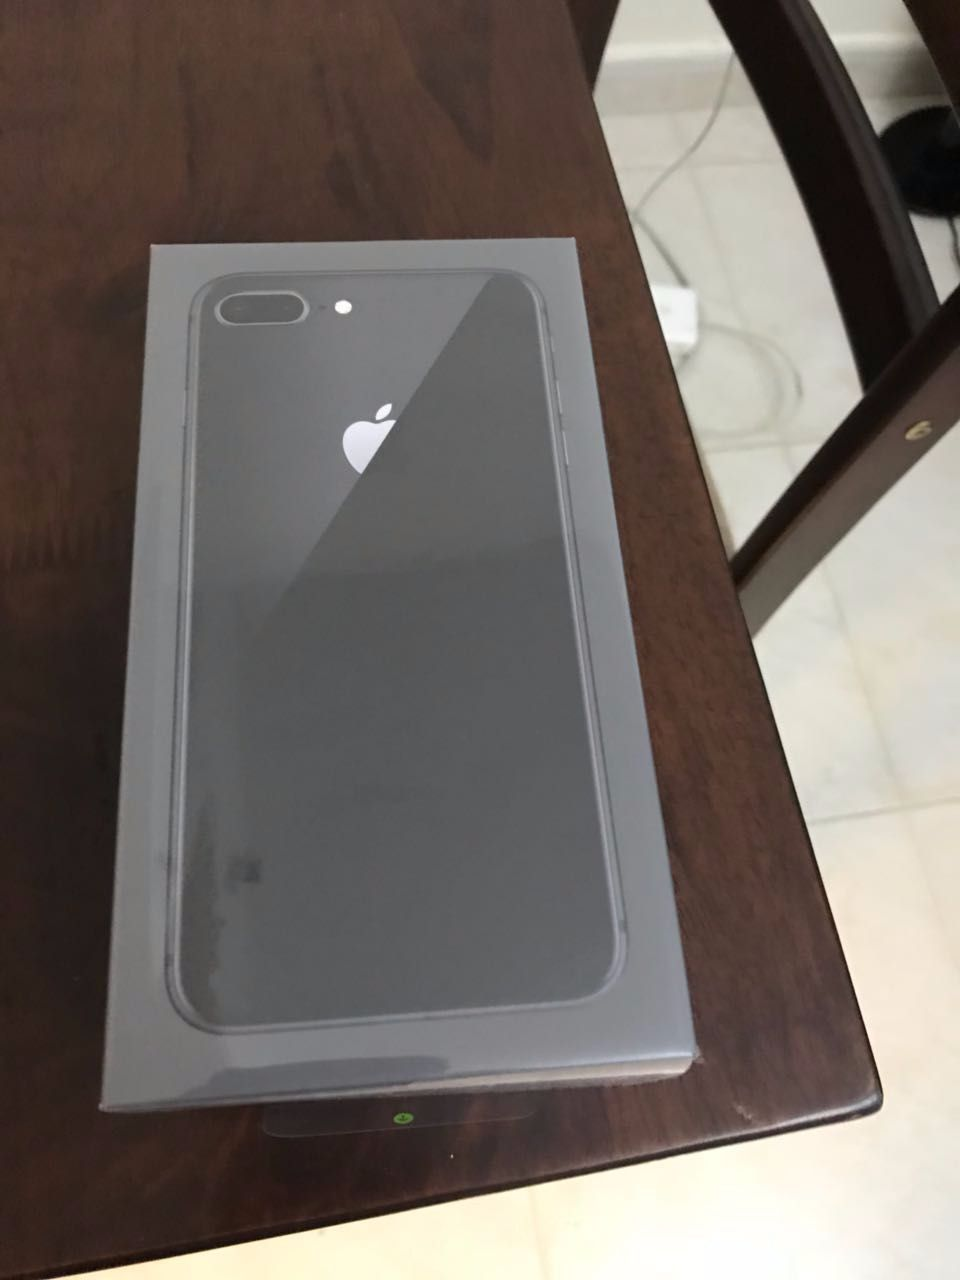 apple iphone 8 plus 256gb 4g lte space grey for sale in sharjah uae sharjah uae storat. Black Bedroom Furniture Sets. Home Design Ideas